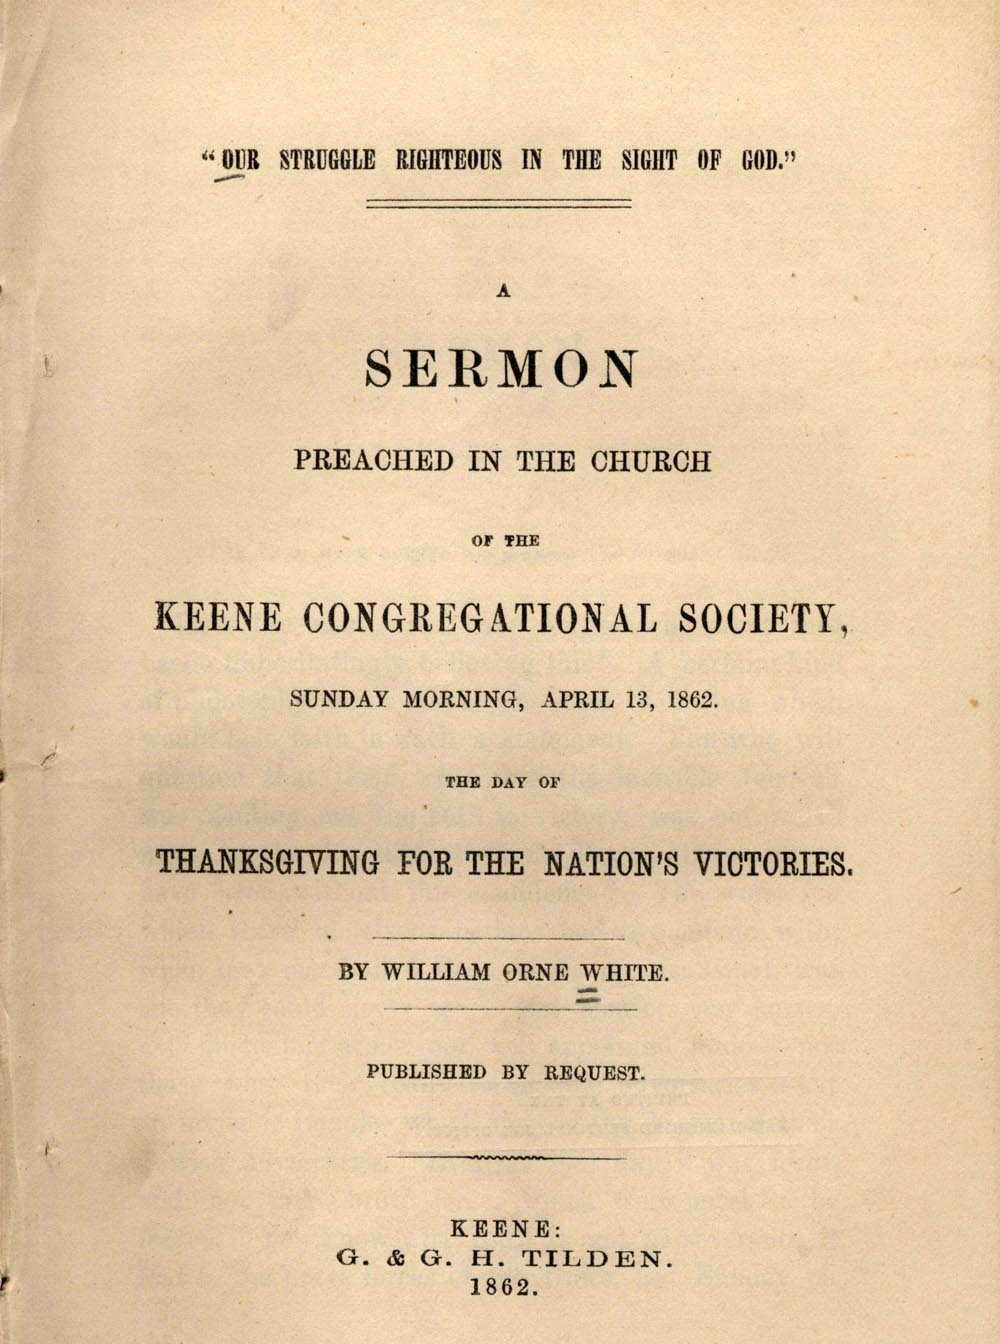 Cover of pamphlet Our struggle righteous in the sight of God by William Orne White